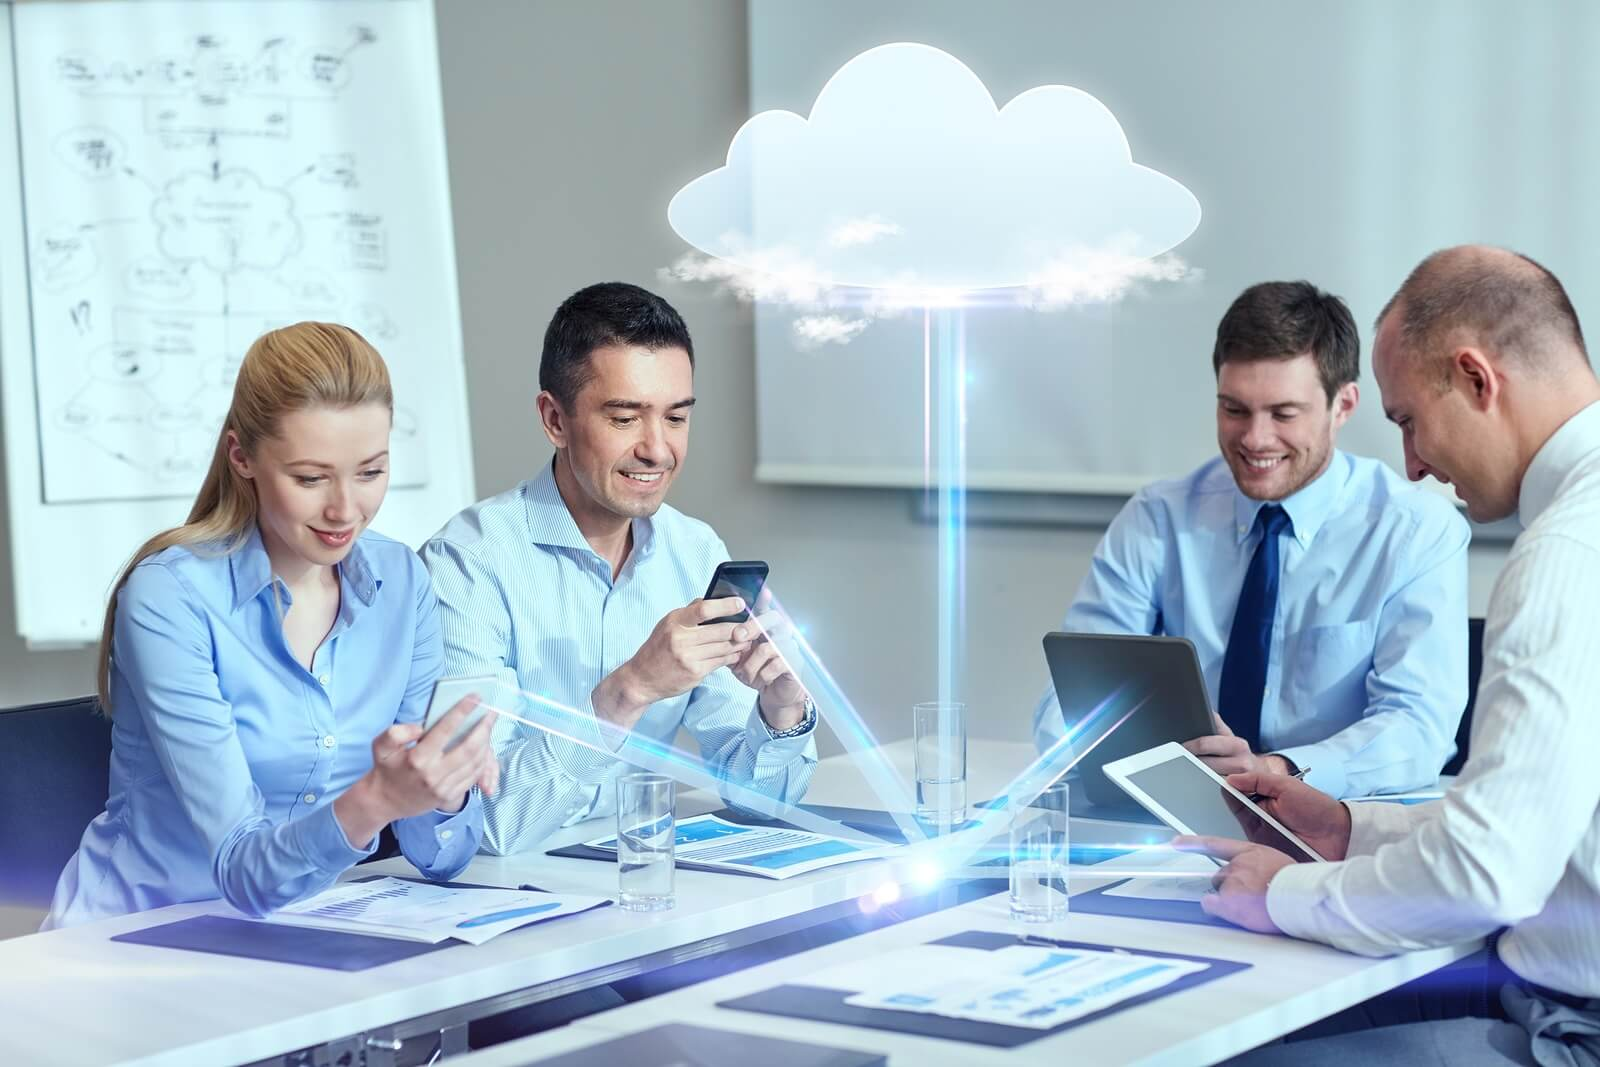 smiling team in conference room using cloud technology